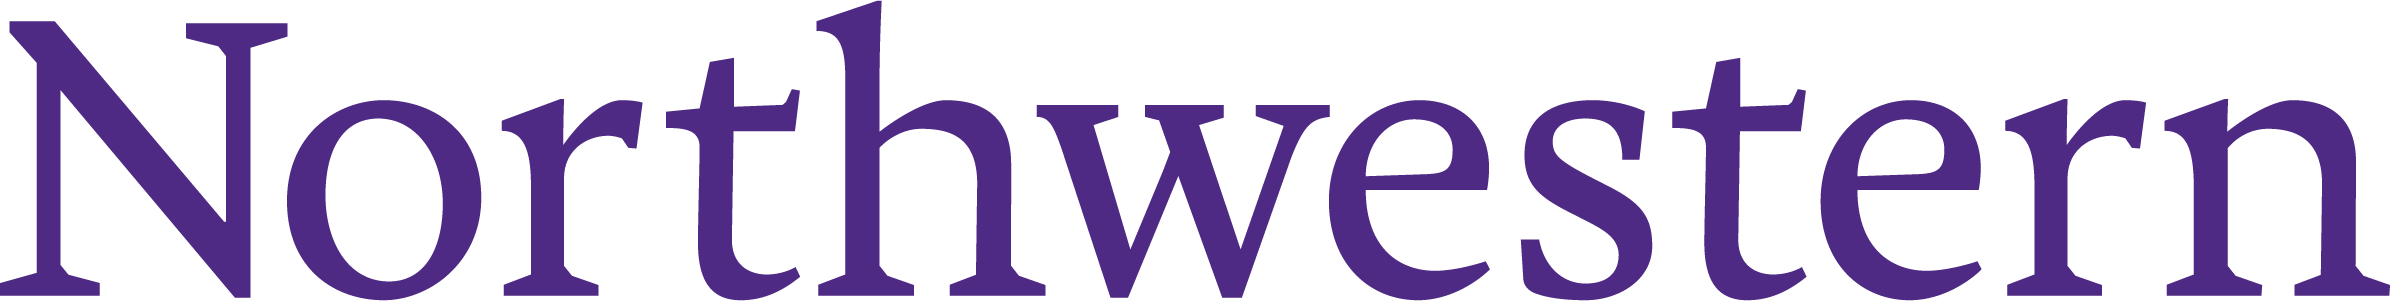 Northwestern wordmark. The word Northwestern is printed in serif font in the school's purple color.